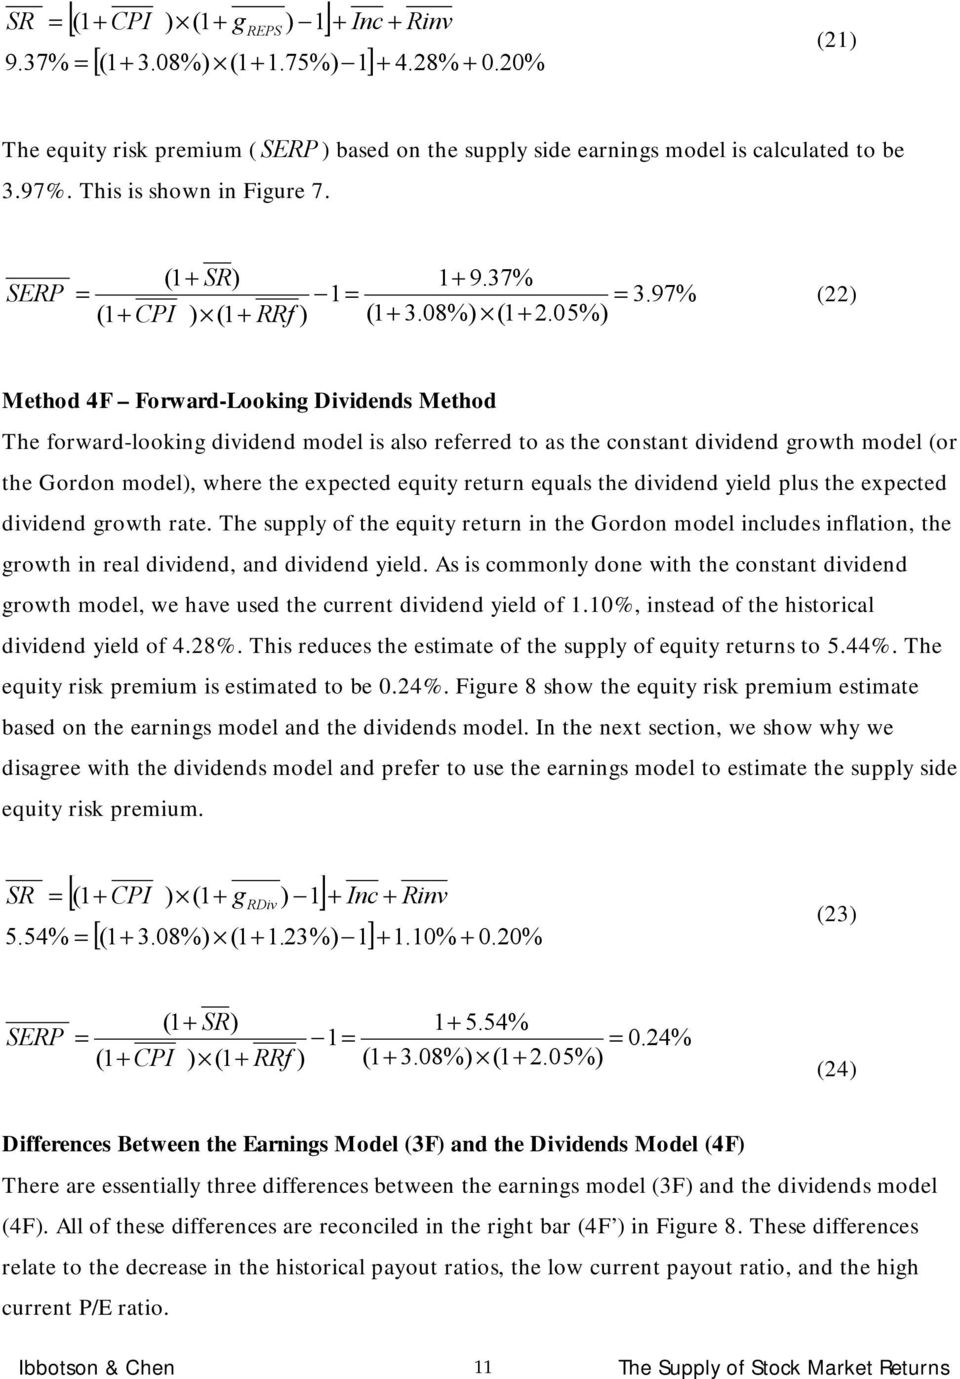 05%) (22) Mehod 4F Forward-Looking Dividends Mehod The forward-looking dividend model is also referred o as he consan dividend growh model (or he Gordon model), where he expeced equiy reurn equals he